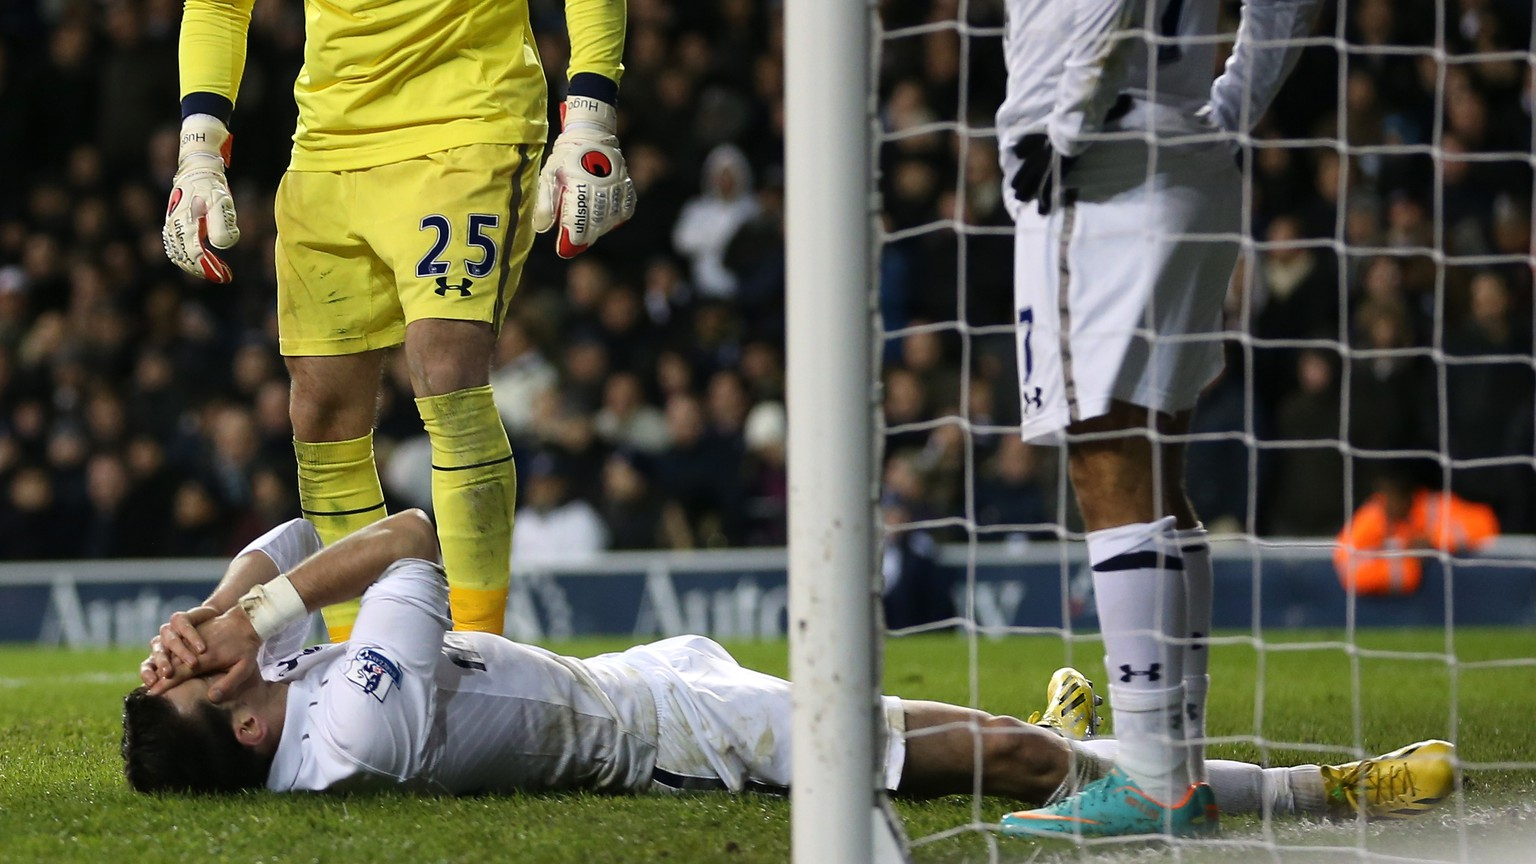 LONDON, ENGLAND - NOVEMBER 28: Hugo Lloris of Tottenham Hotspur looks to Gareth Bale of Tottenham Hotspur who lies on the floor after scoring an own goal during the Barclays Premier League match between Tottenham Hotspur and Liverpool at White Hart Lane on November 28, 2012 in London, England.  (Photo by Julian Finney/Getty Images)